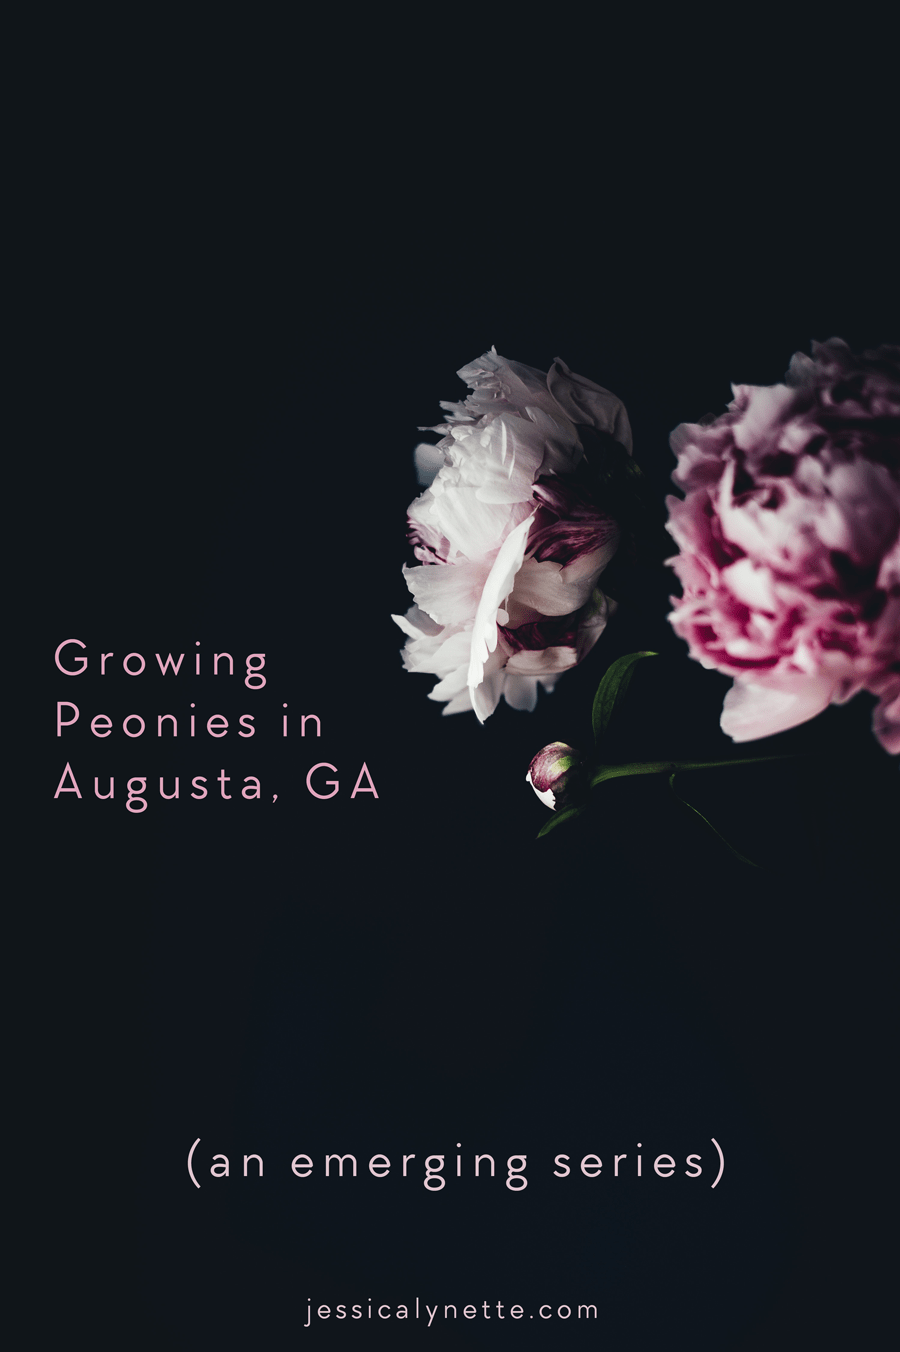 Growing Peonies in the South